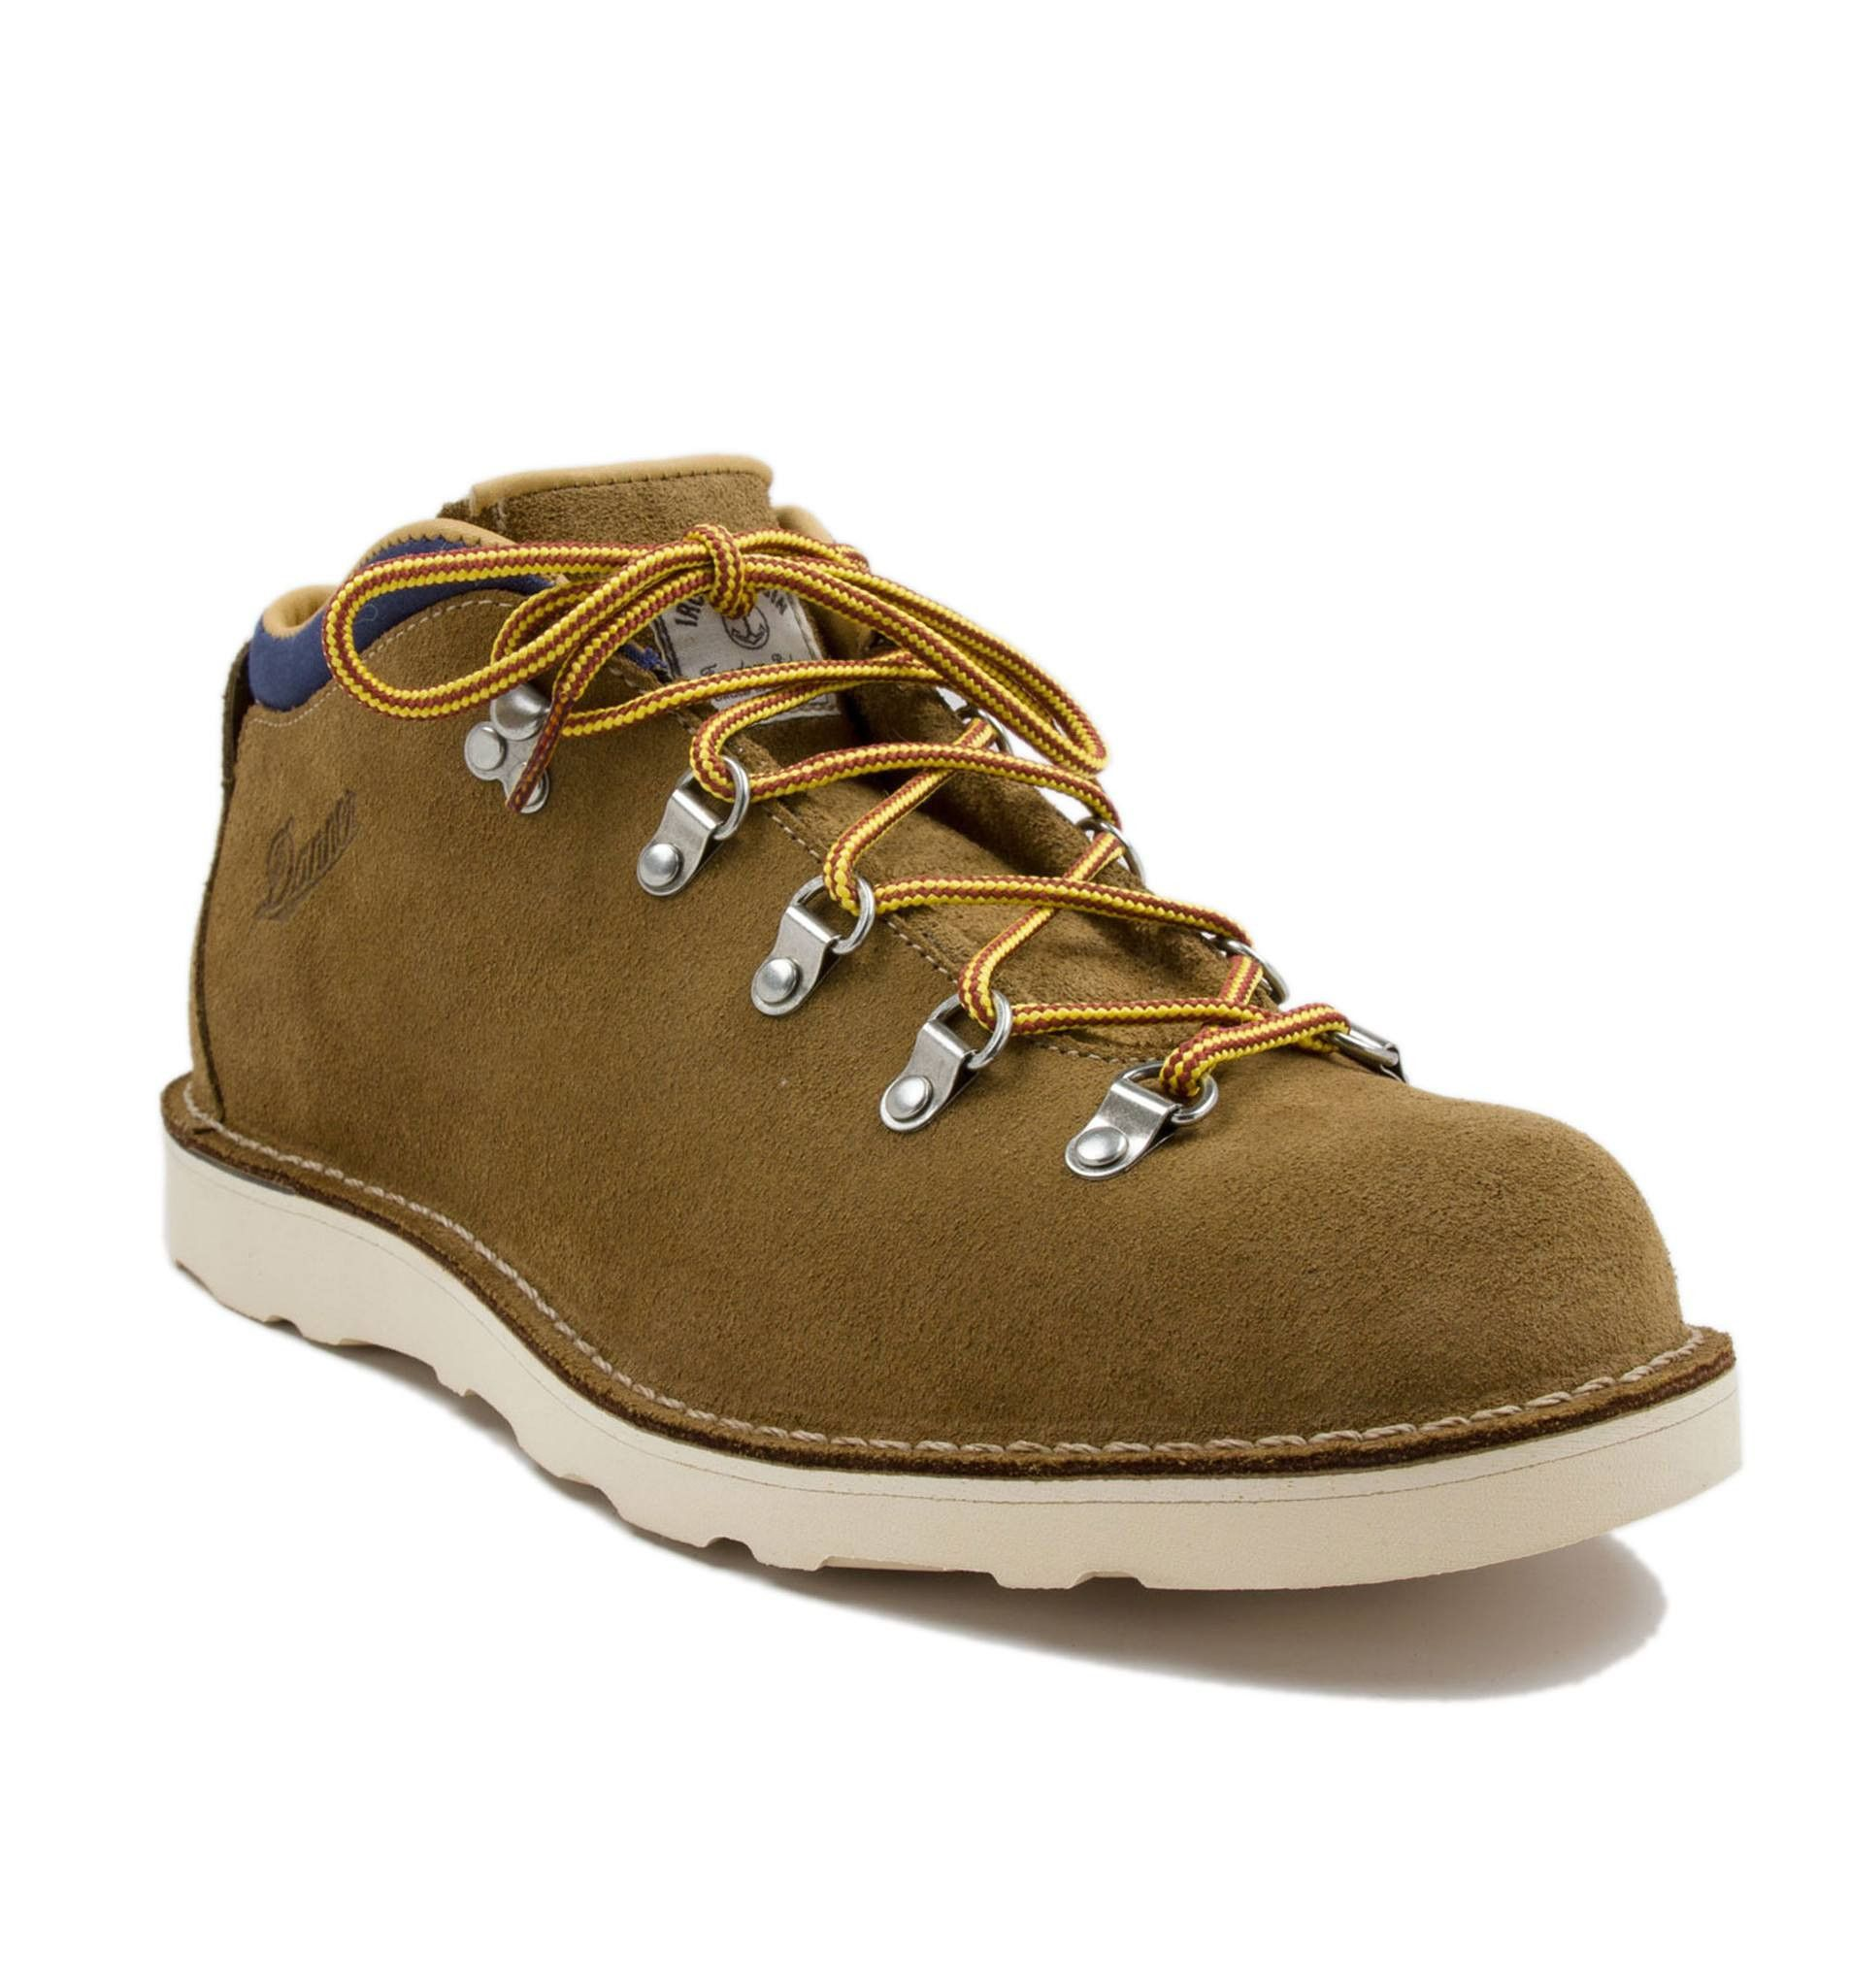 86e34e95c3ab INR x Danner Tramline Boots  RePin by AT Social Media Marketing - Pinterest  Marketing Specialists